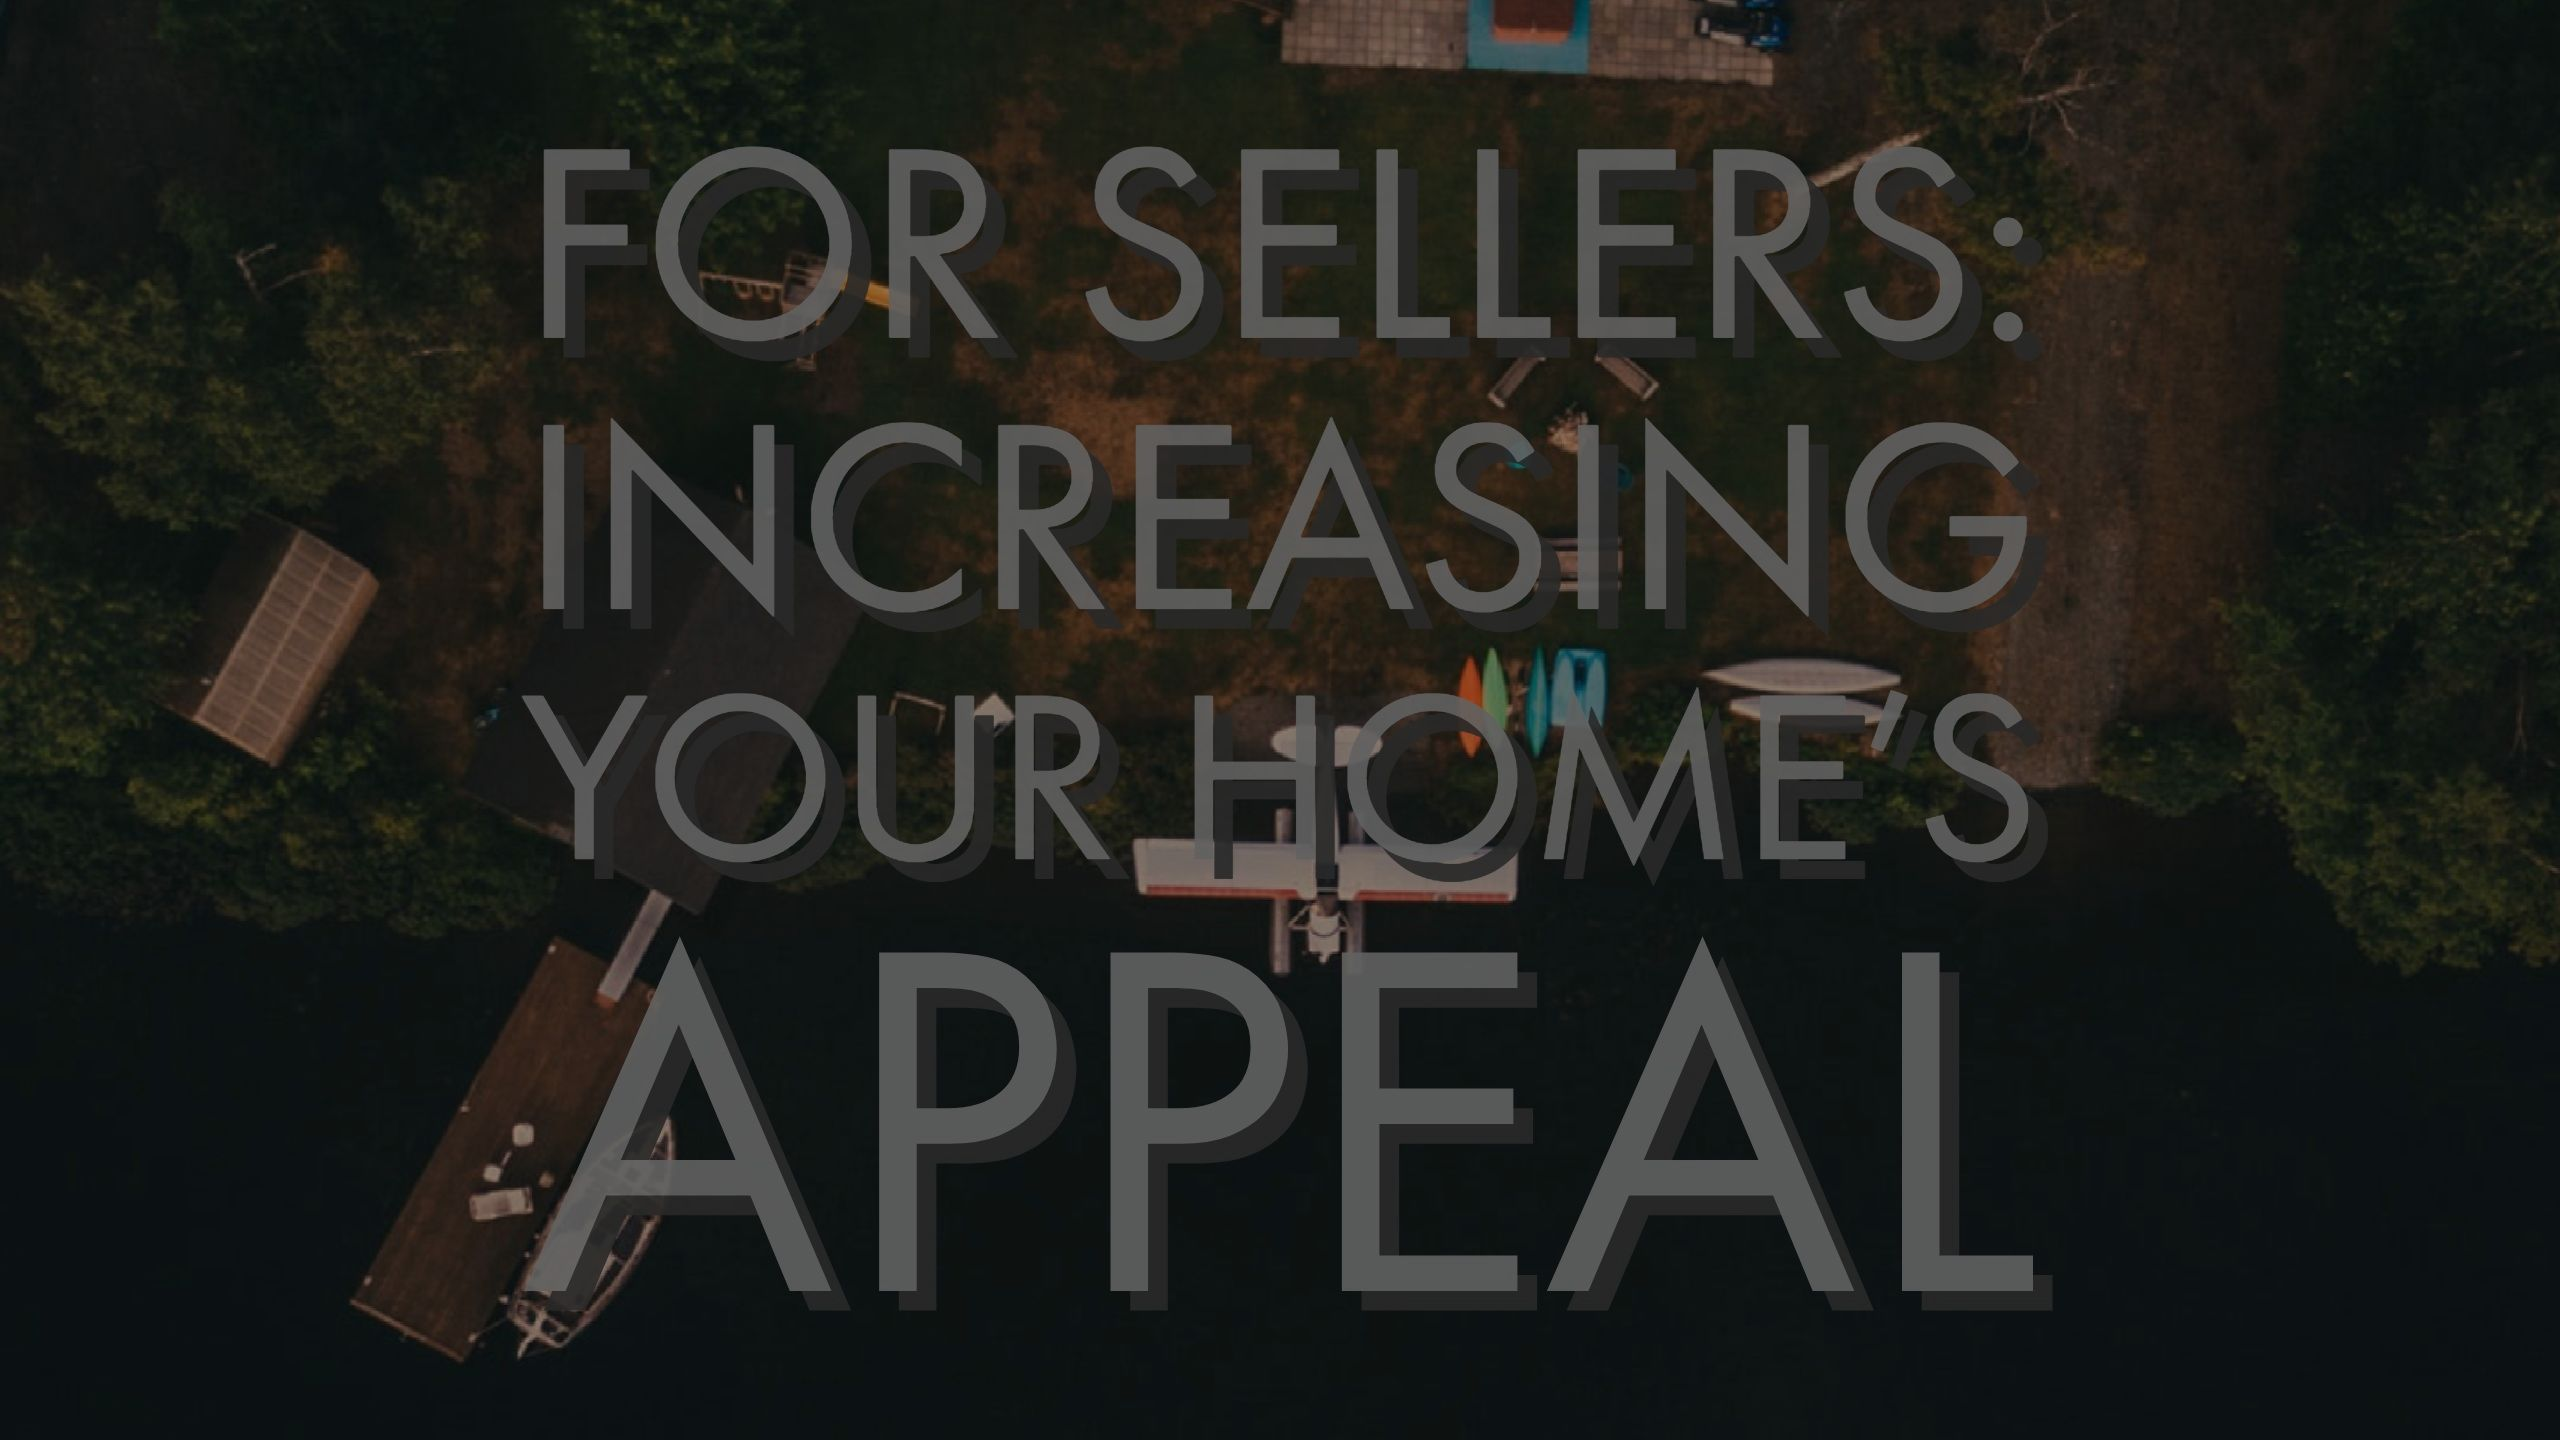 Sellers Increase Your Home's Appeal!